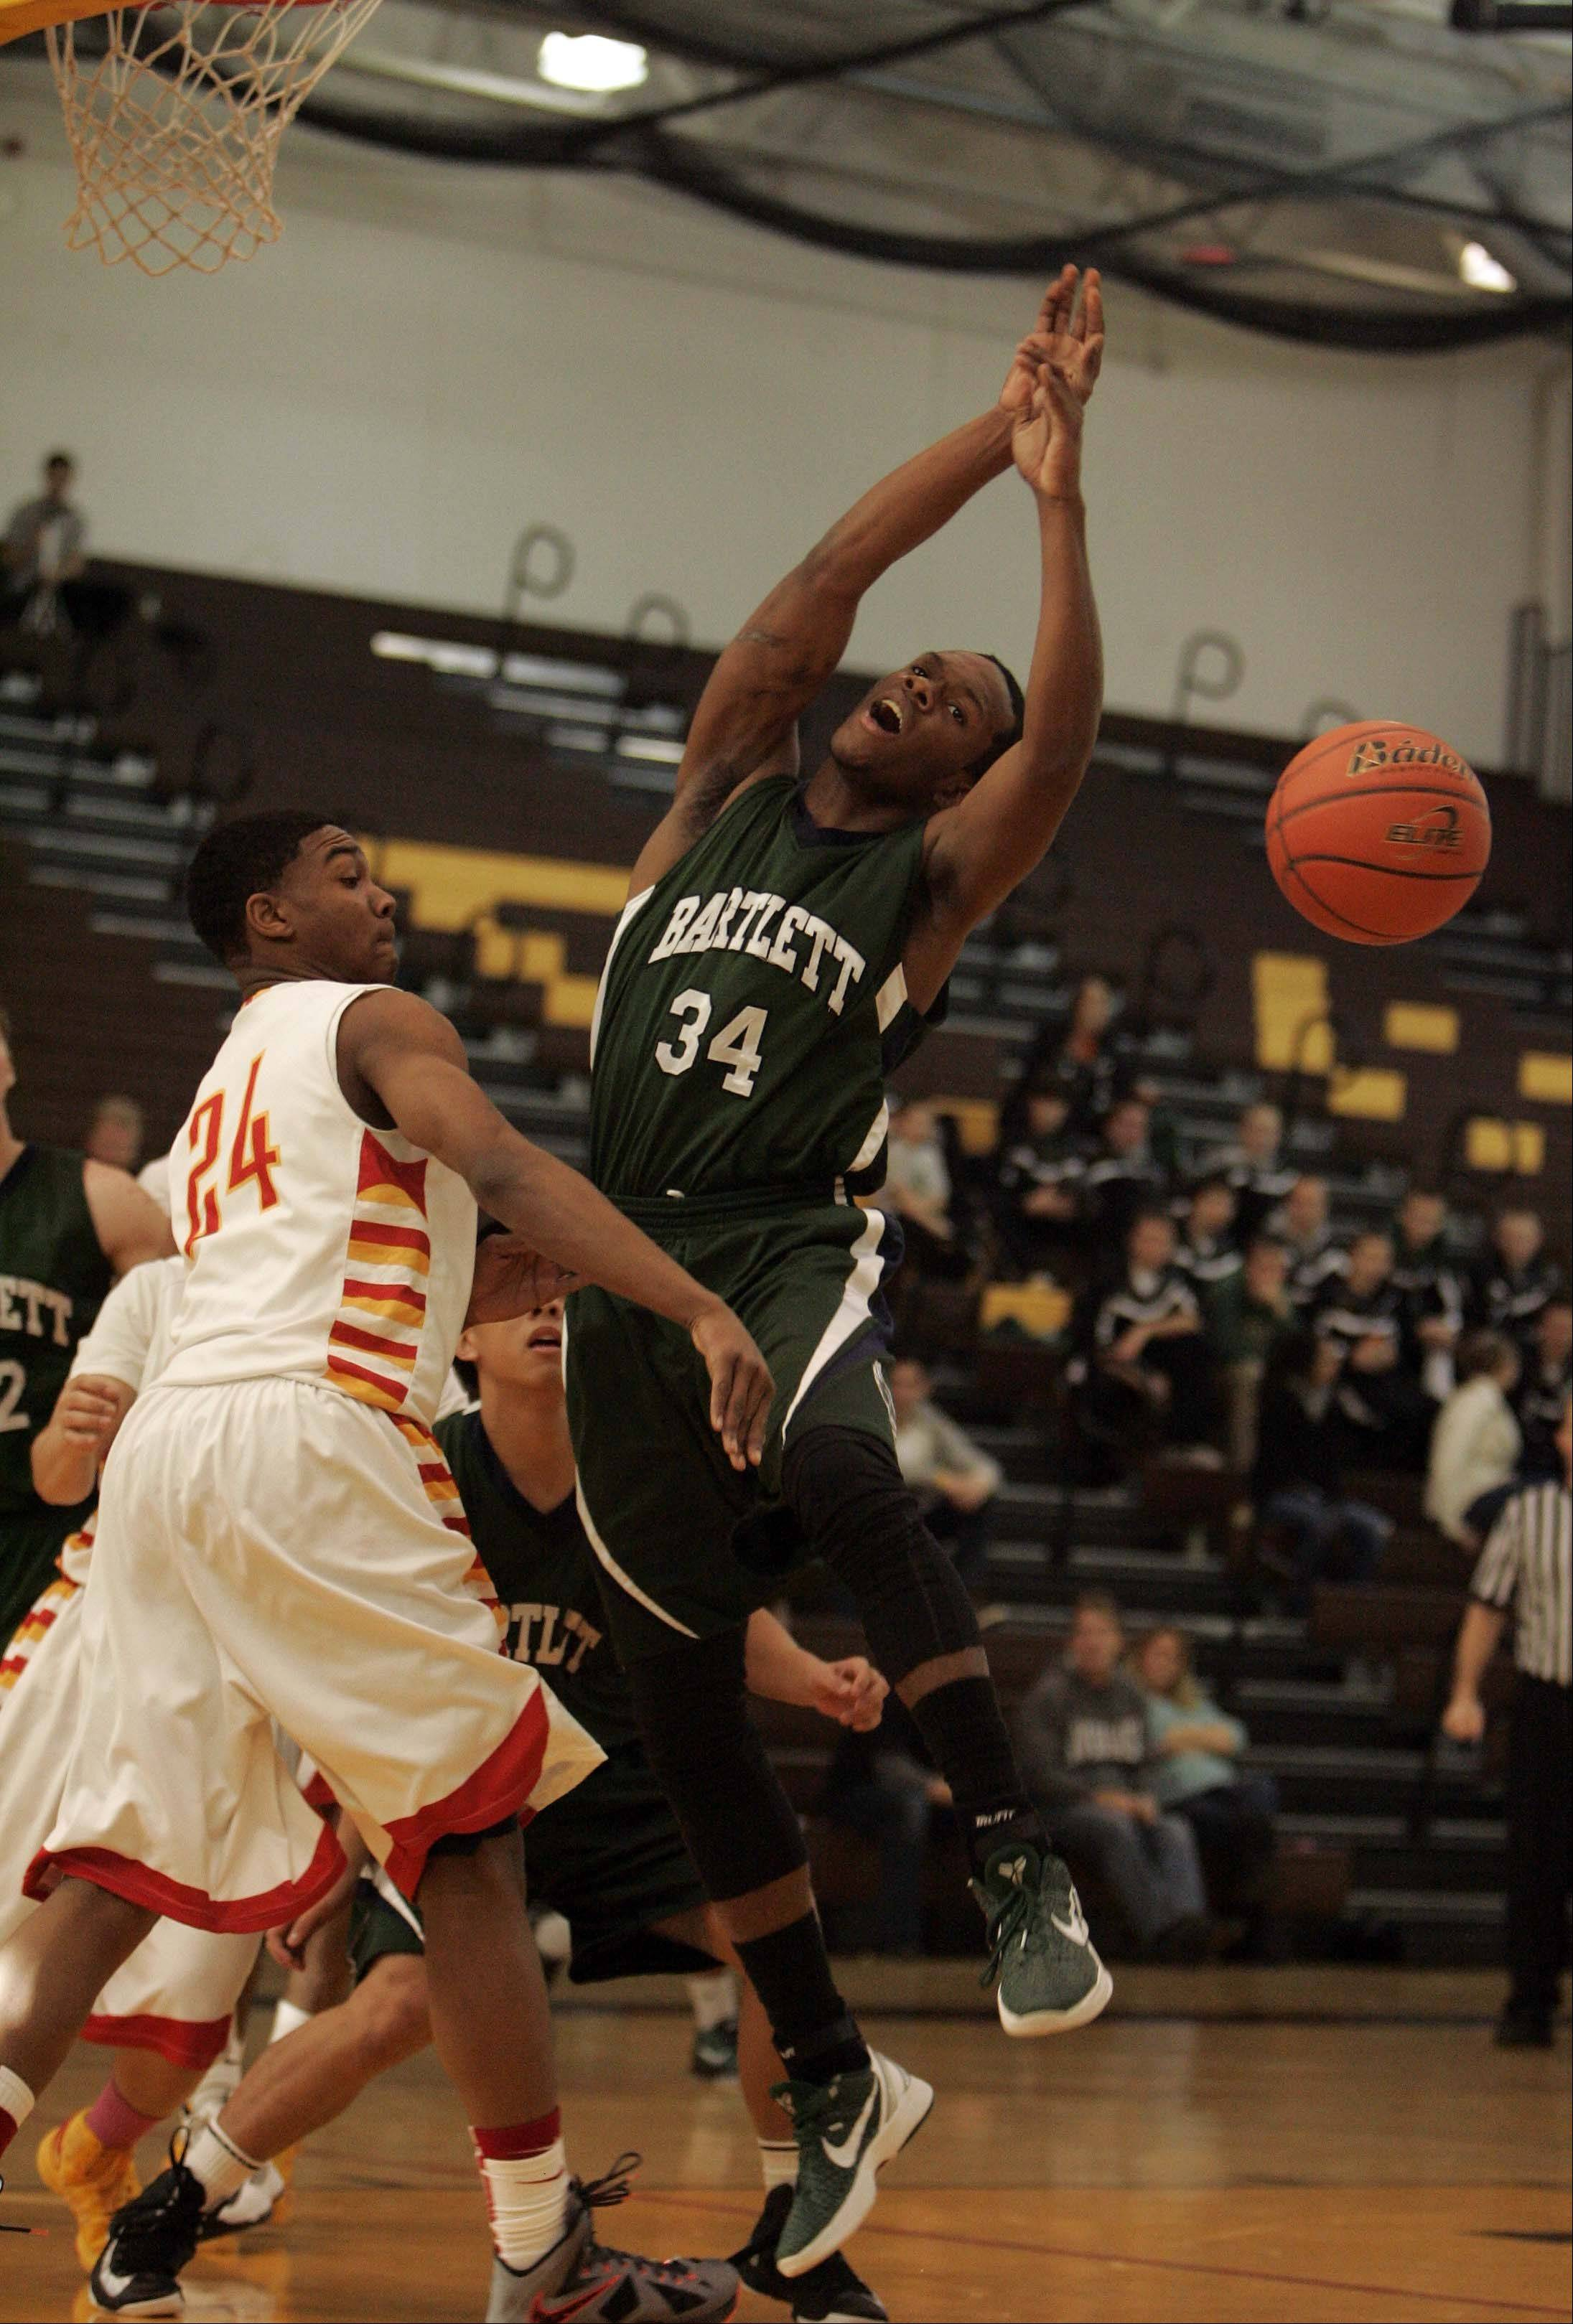 Images from the Bartlett vs. Rockford Jefferson boys basketball game Saturday, December 22, 2012.